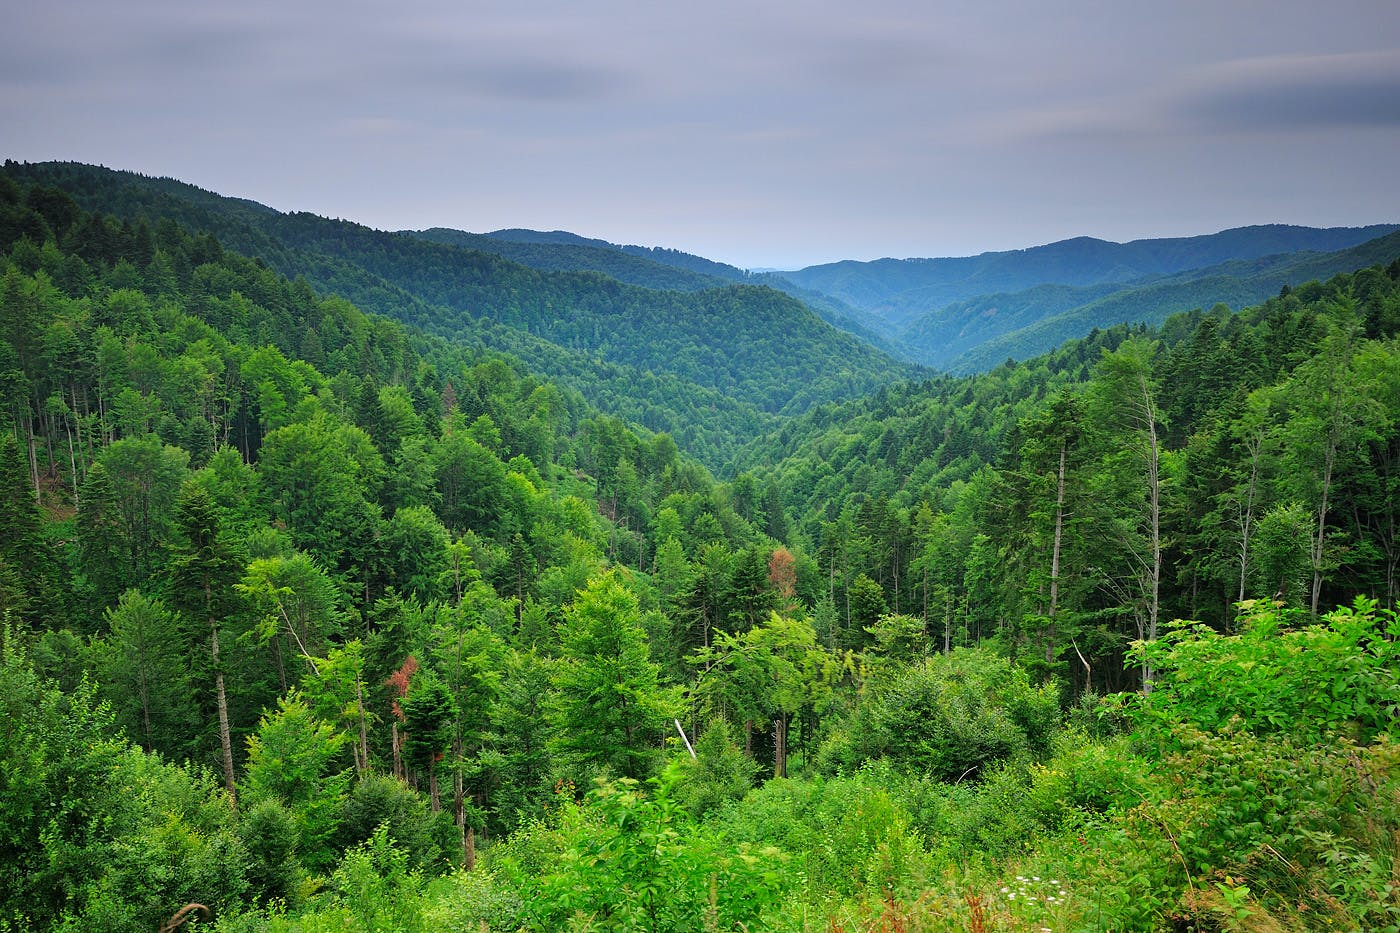 The view of a lush green forest across several valleys.